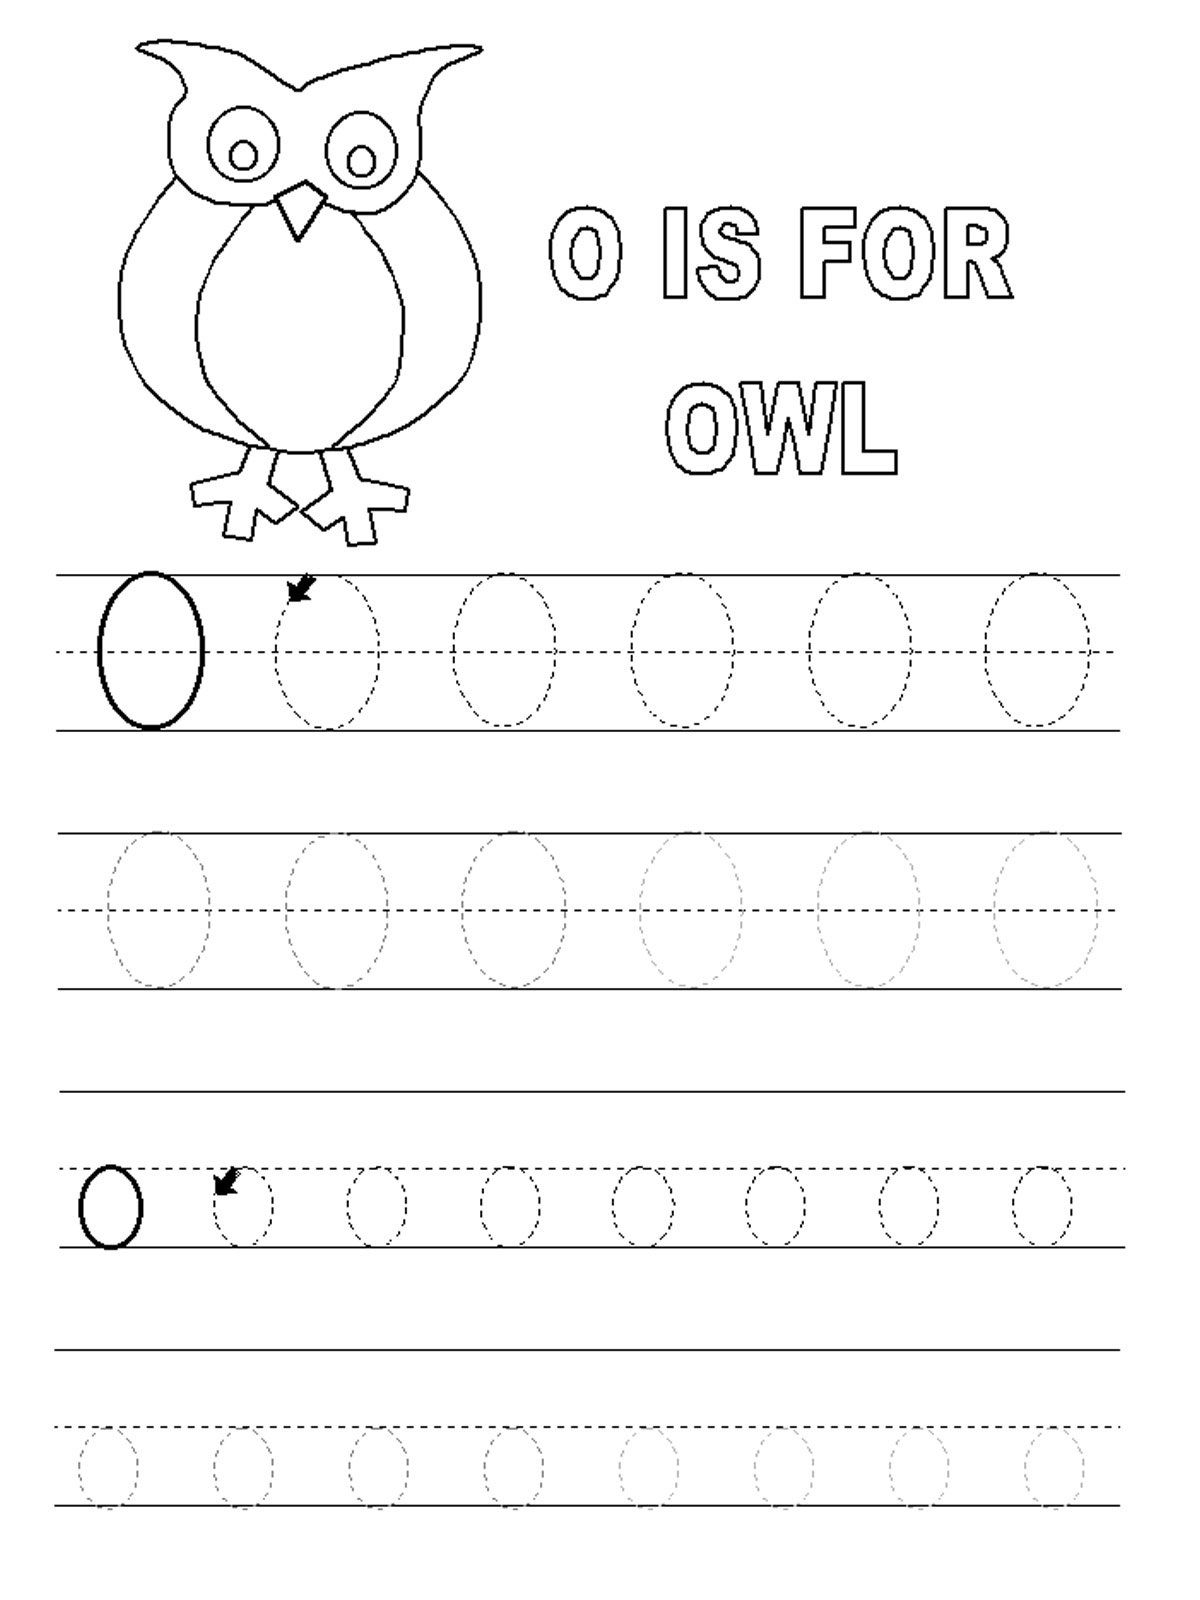 Free Online Worksheets | Letter O Worksheets, Printable within Letter O Worksheets For Kindergarten Free